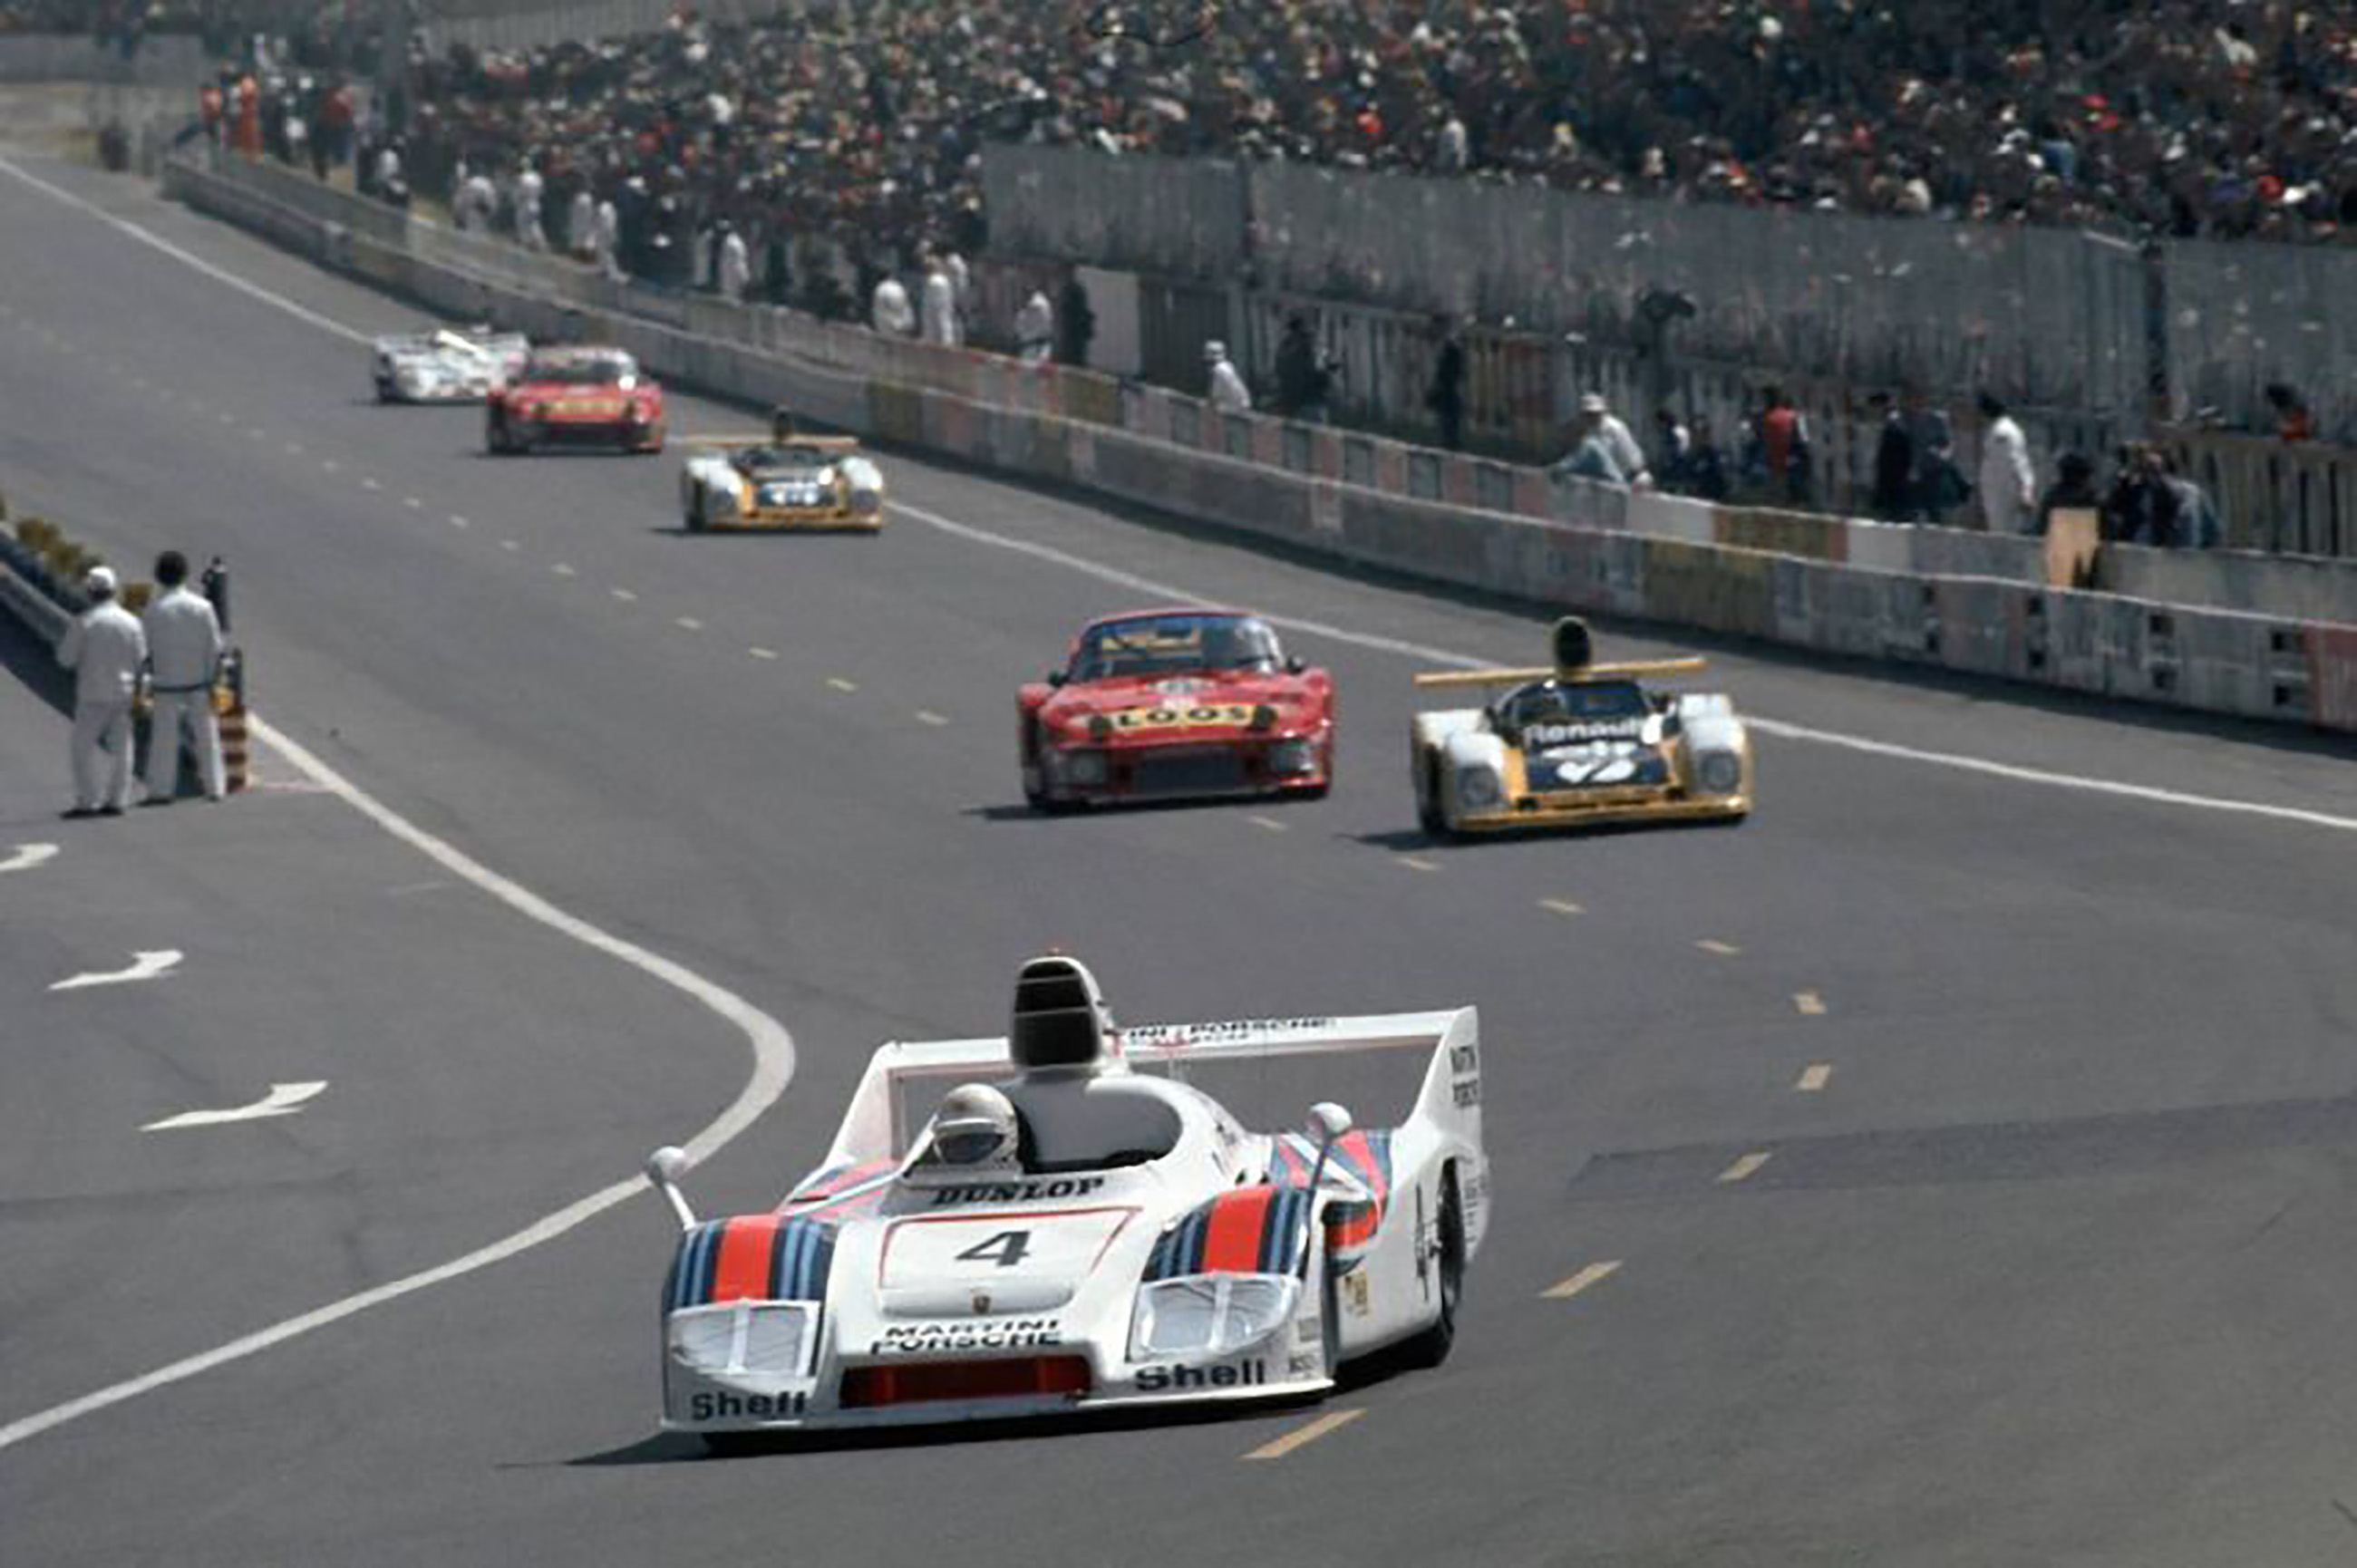 1977-LeMans-HurleyHaywood copy.jpg